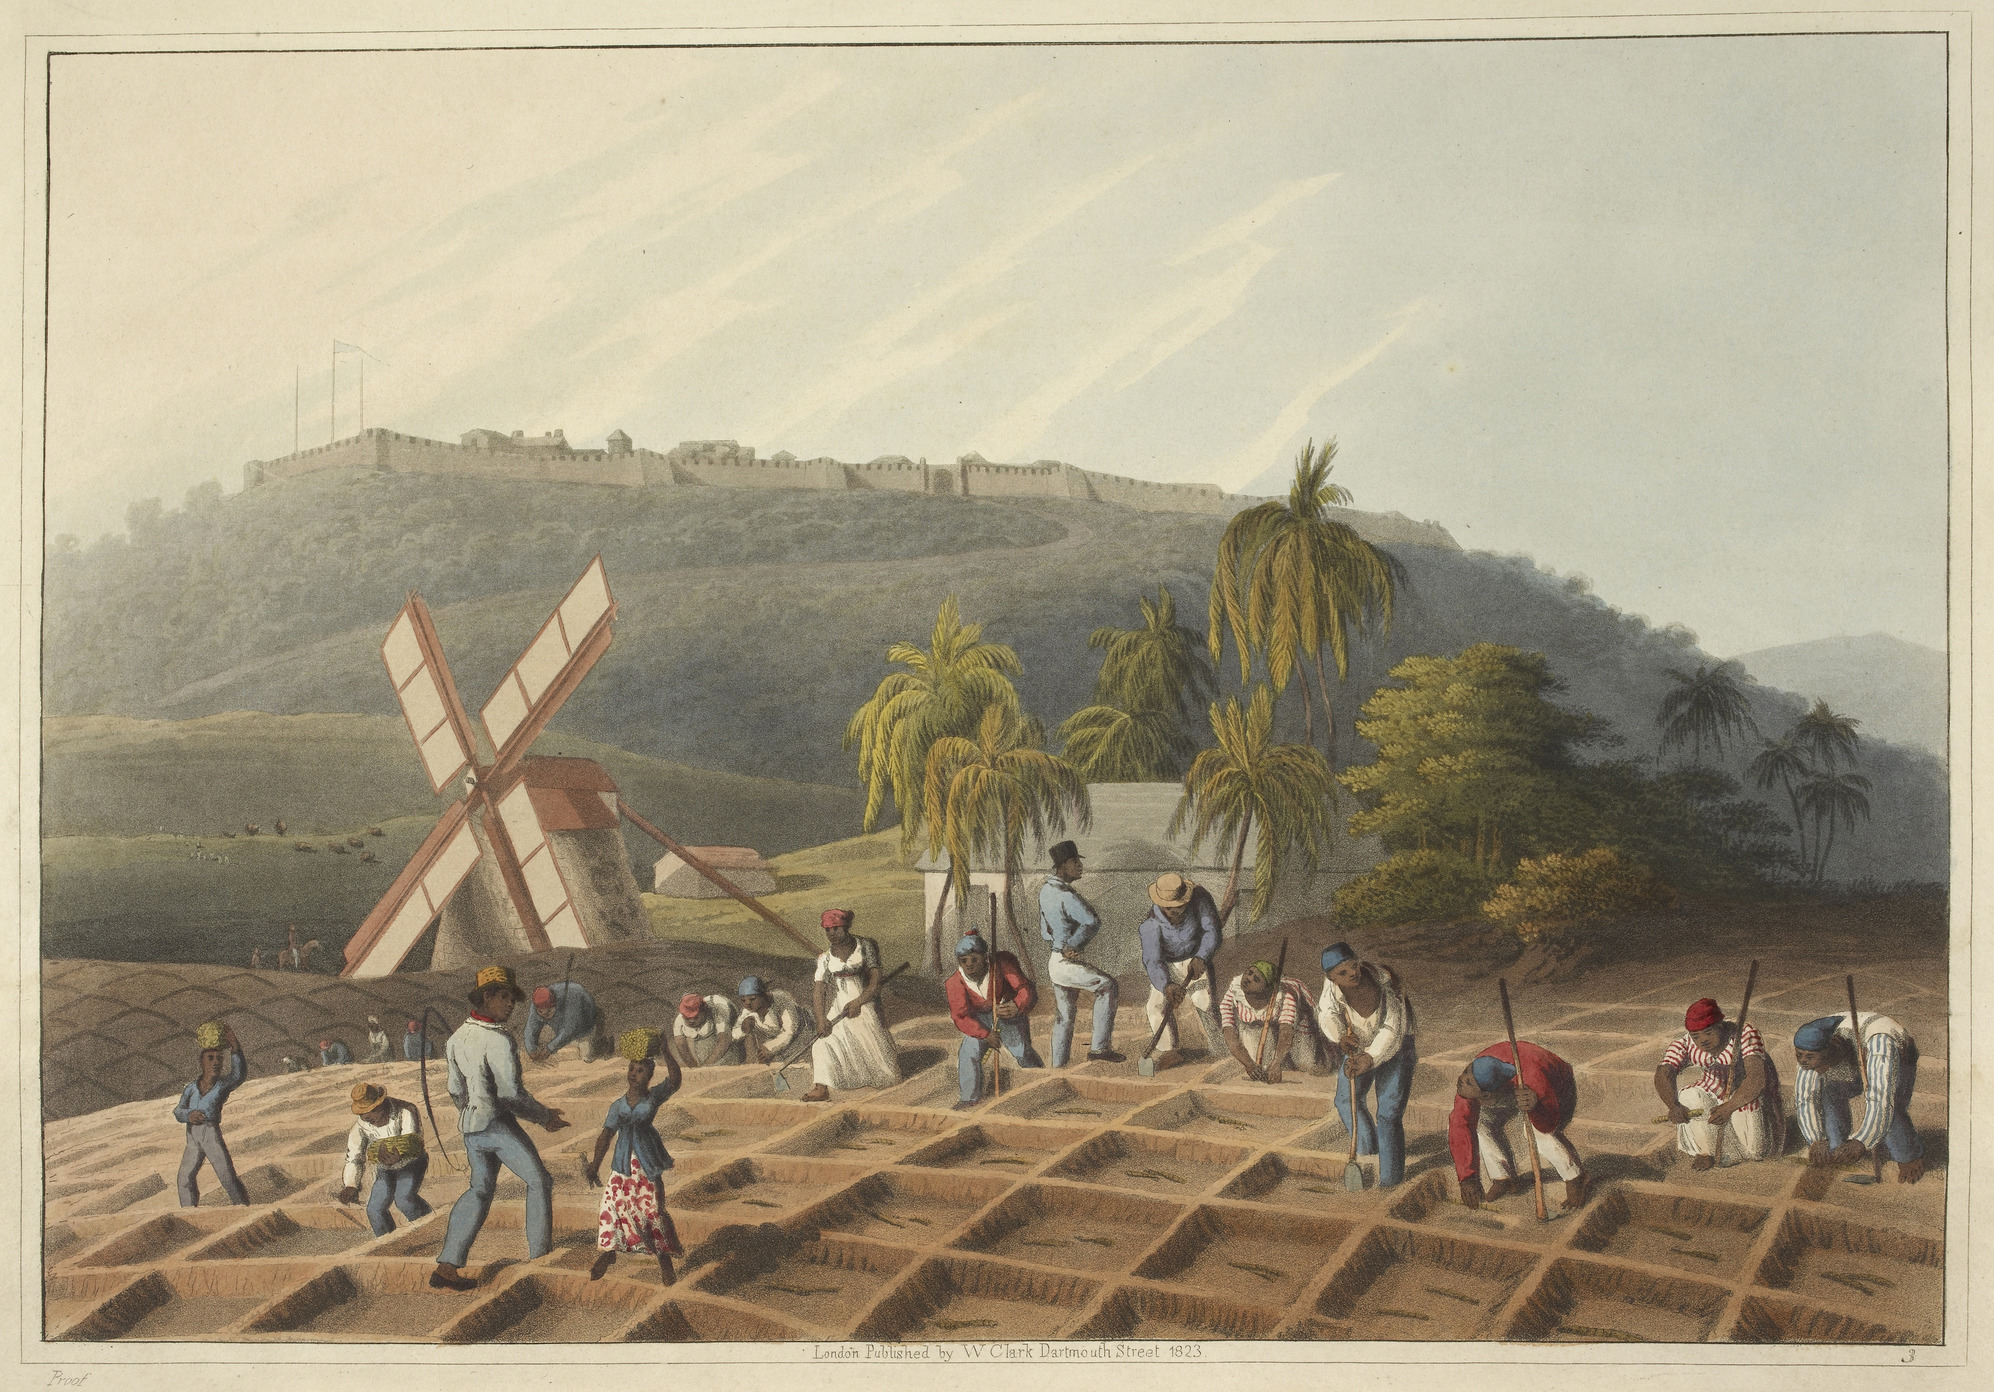 plantation system in the caribbean Social stratification in the caribbean has been influenced by slavery, colonialism, plantations and indentured servitude, according to cape sociology the upper class consisted of white plantation owners, the middle class was educated brown-skinned mulattoes and had some entrepreneurial power, while .